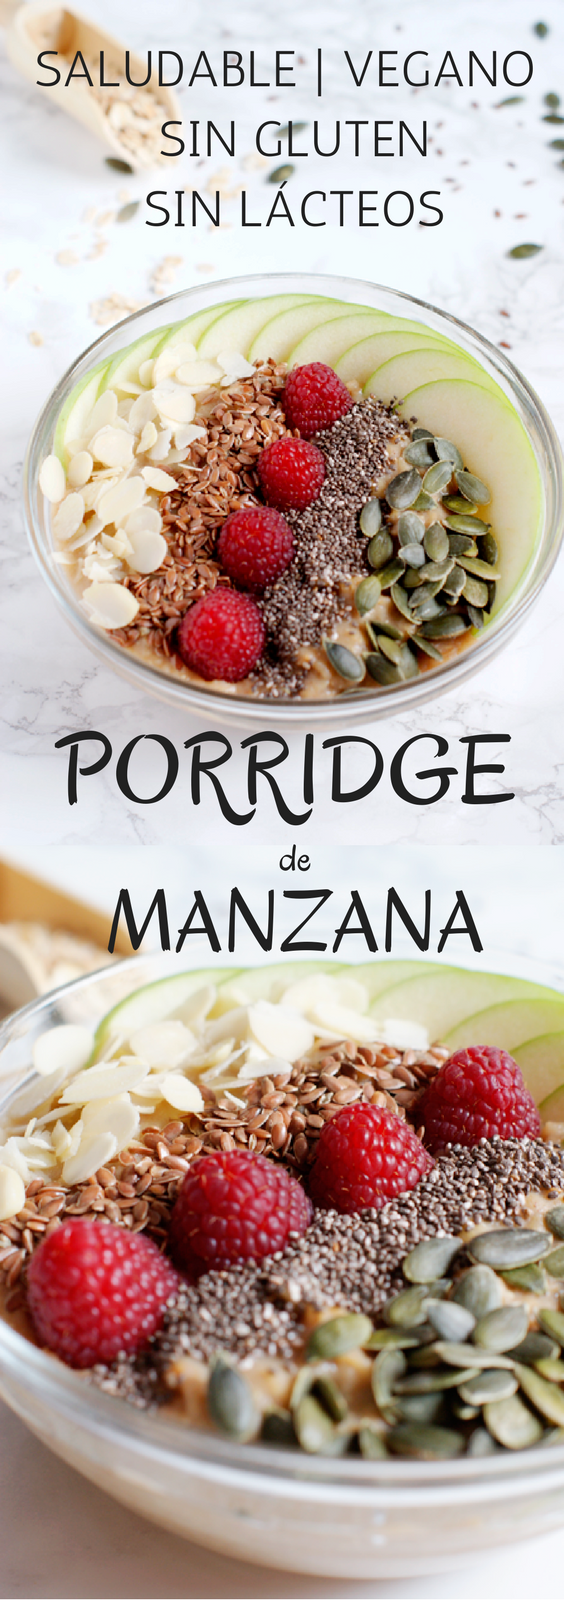 Receta de brunch saludable - Porridge de manzana